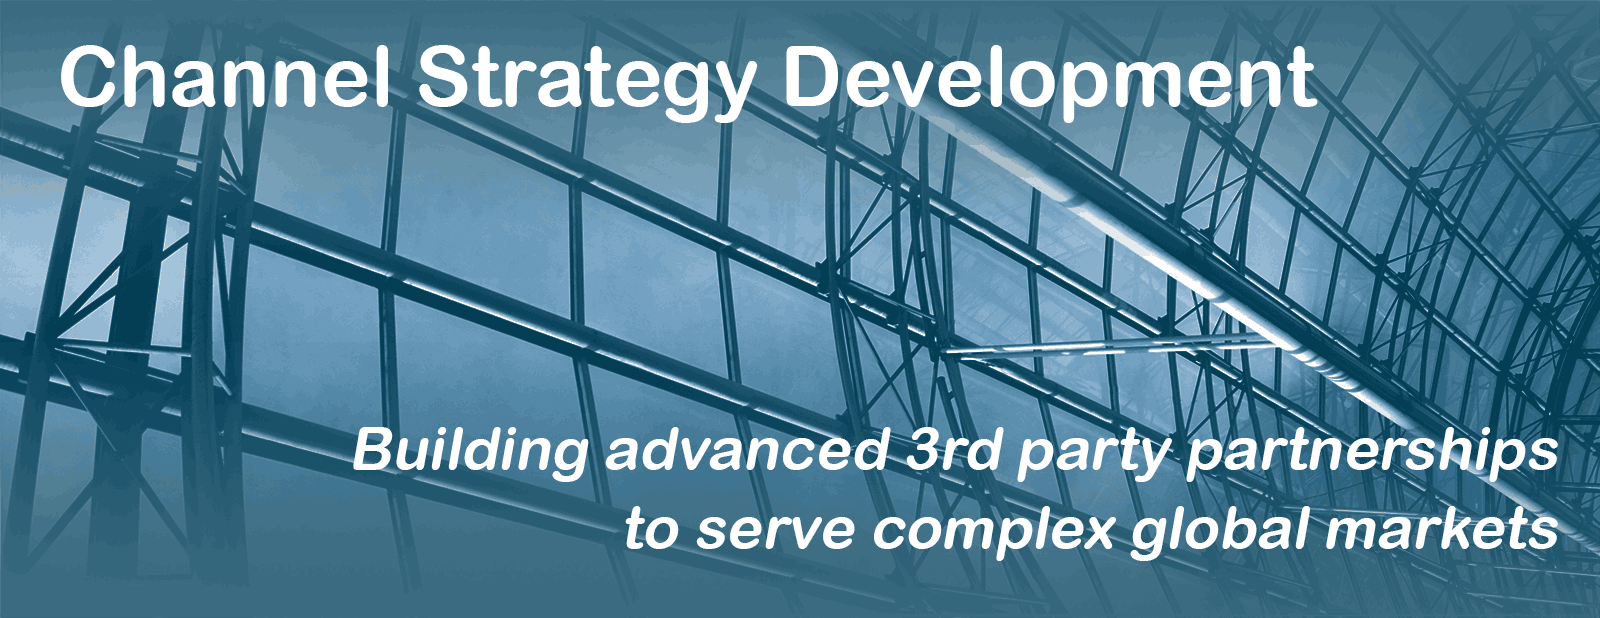 Channel Strategy Development - Building advanced 3rd part partnerships to serve complex global markets